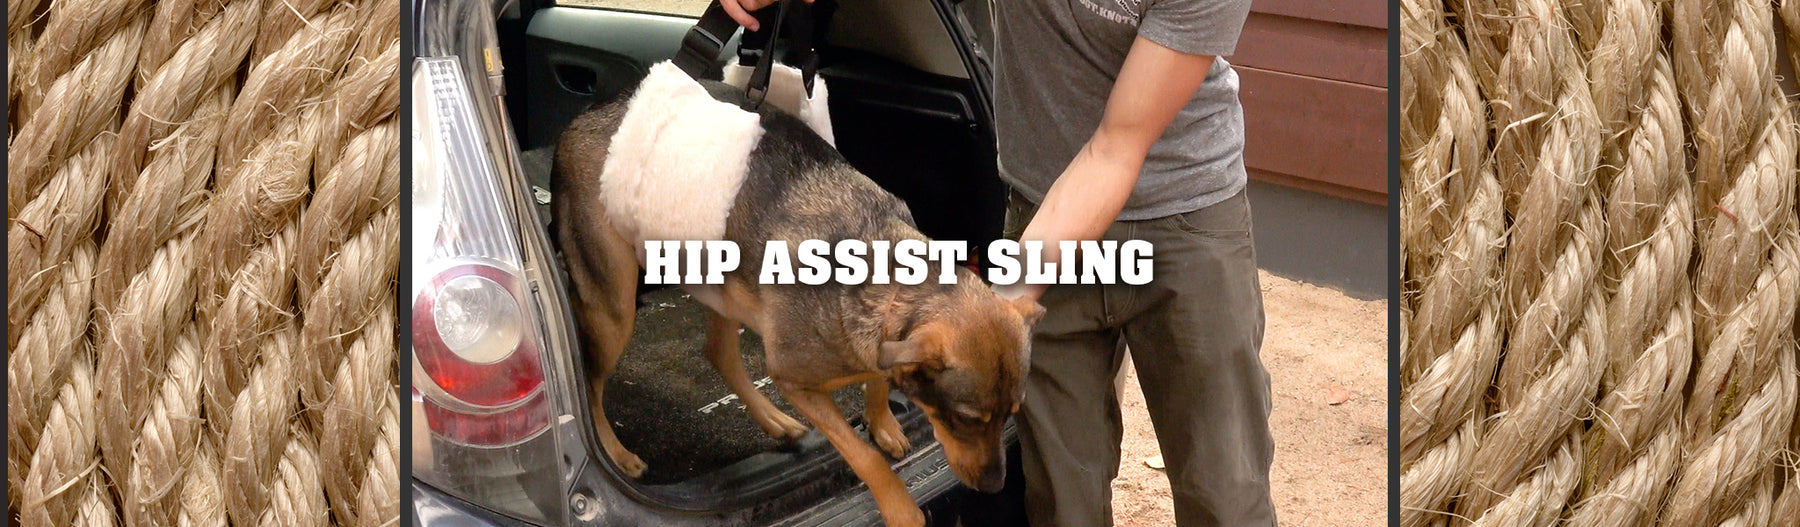 Product Feature: Hip Assist Sling